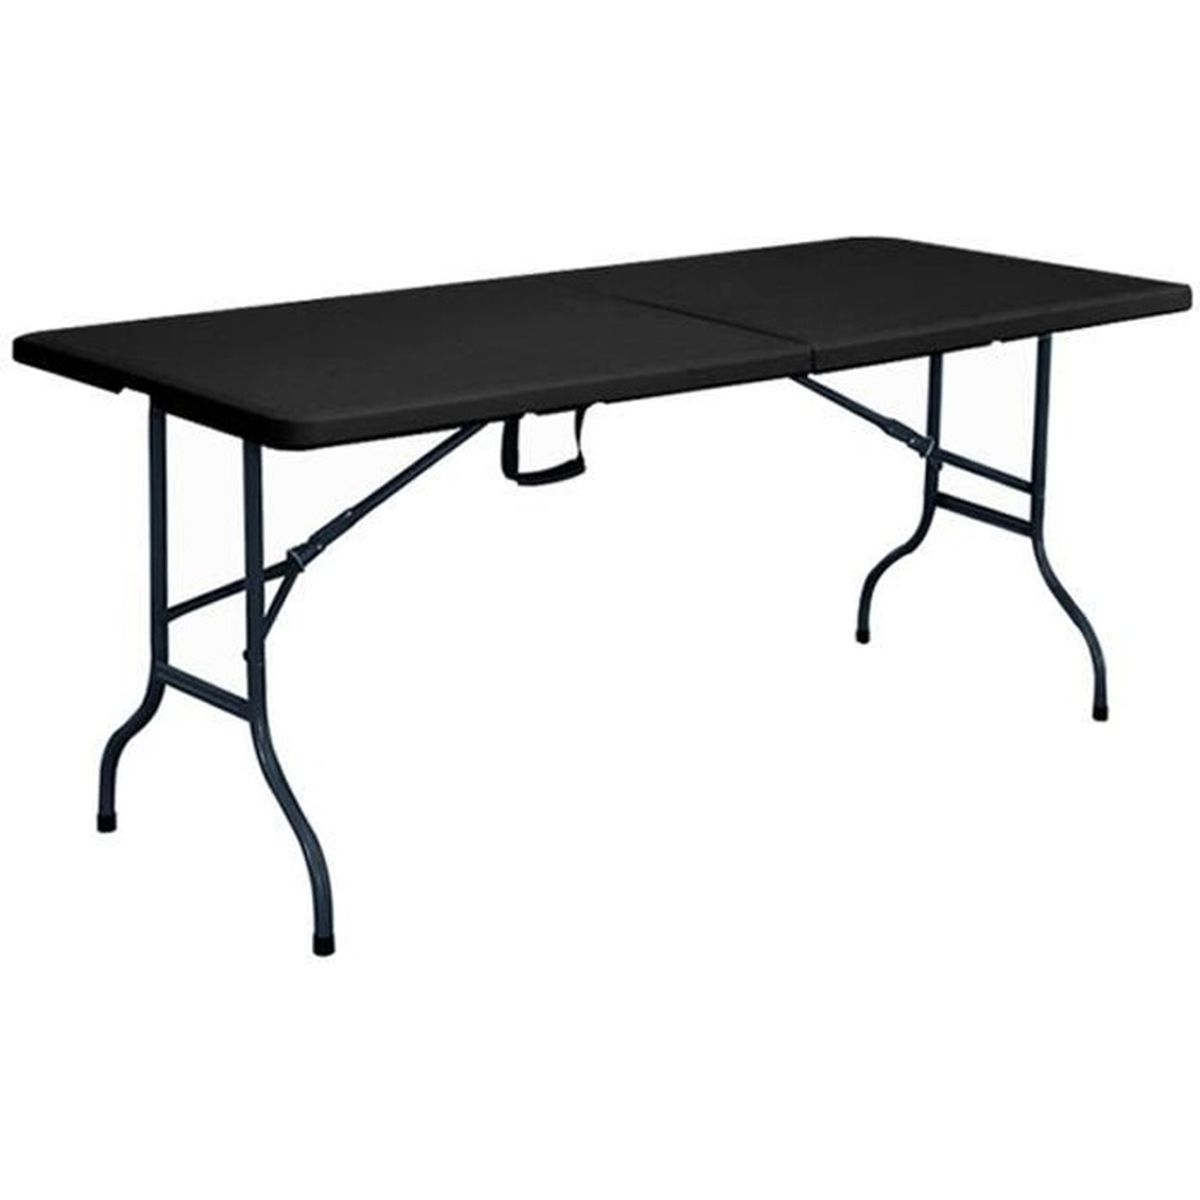 table pliable pour camping achat vente pas cher. Black Bedroom Furniture Sets. Home Design Ideas